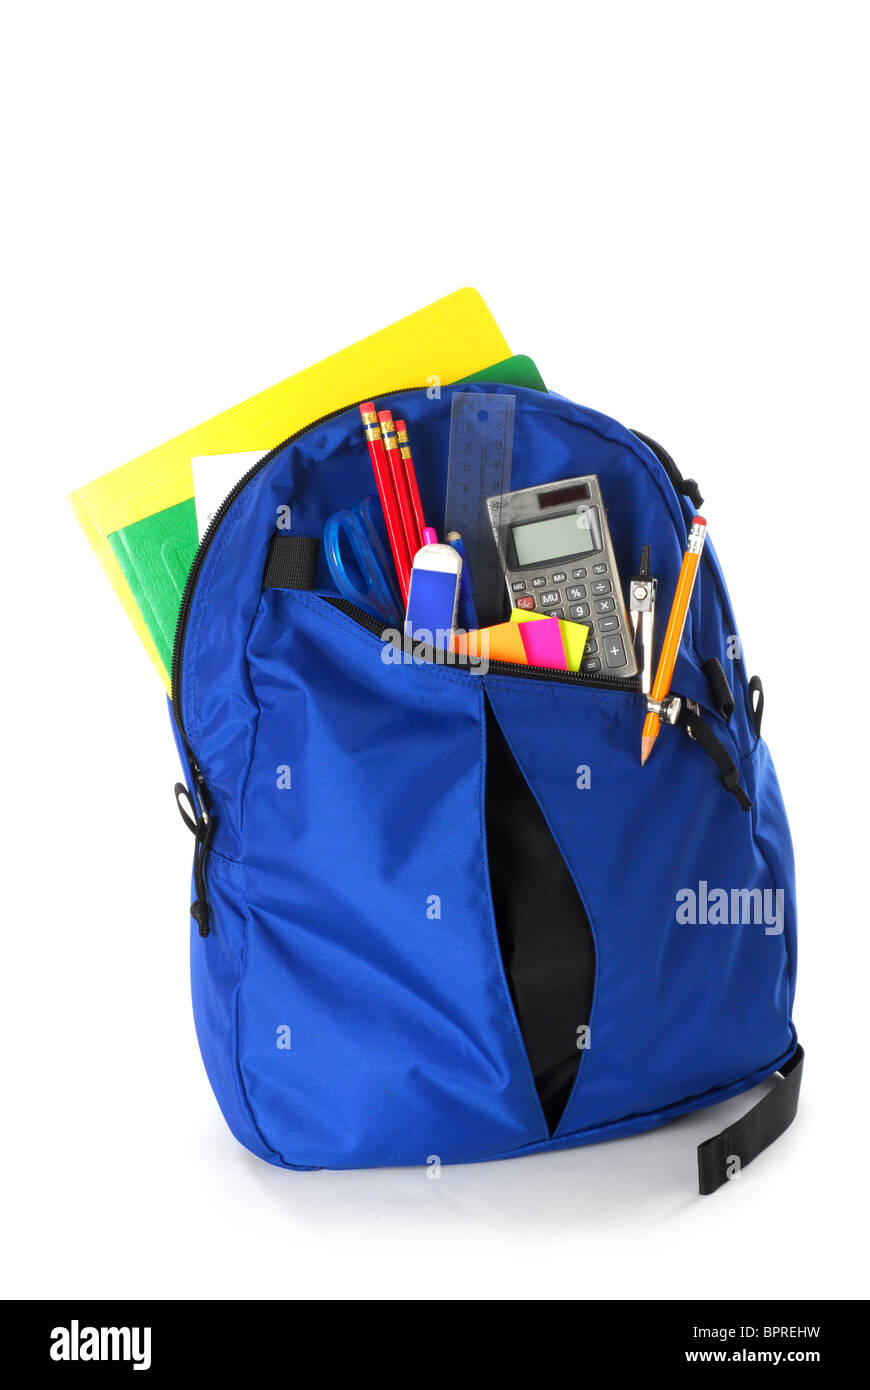 Backpack full of back to school supplies studio isolated on white background - Stock Image